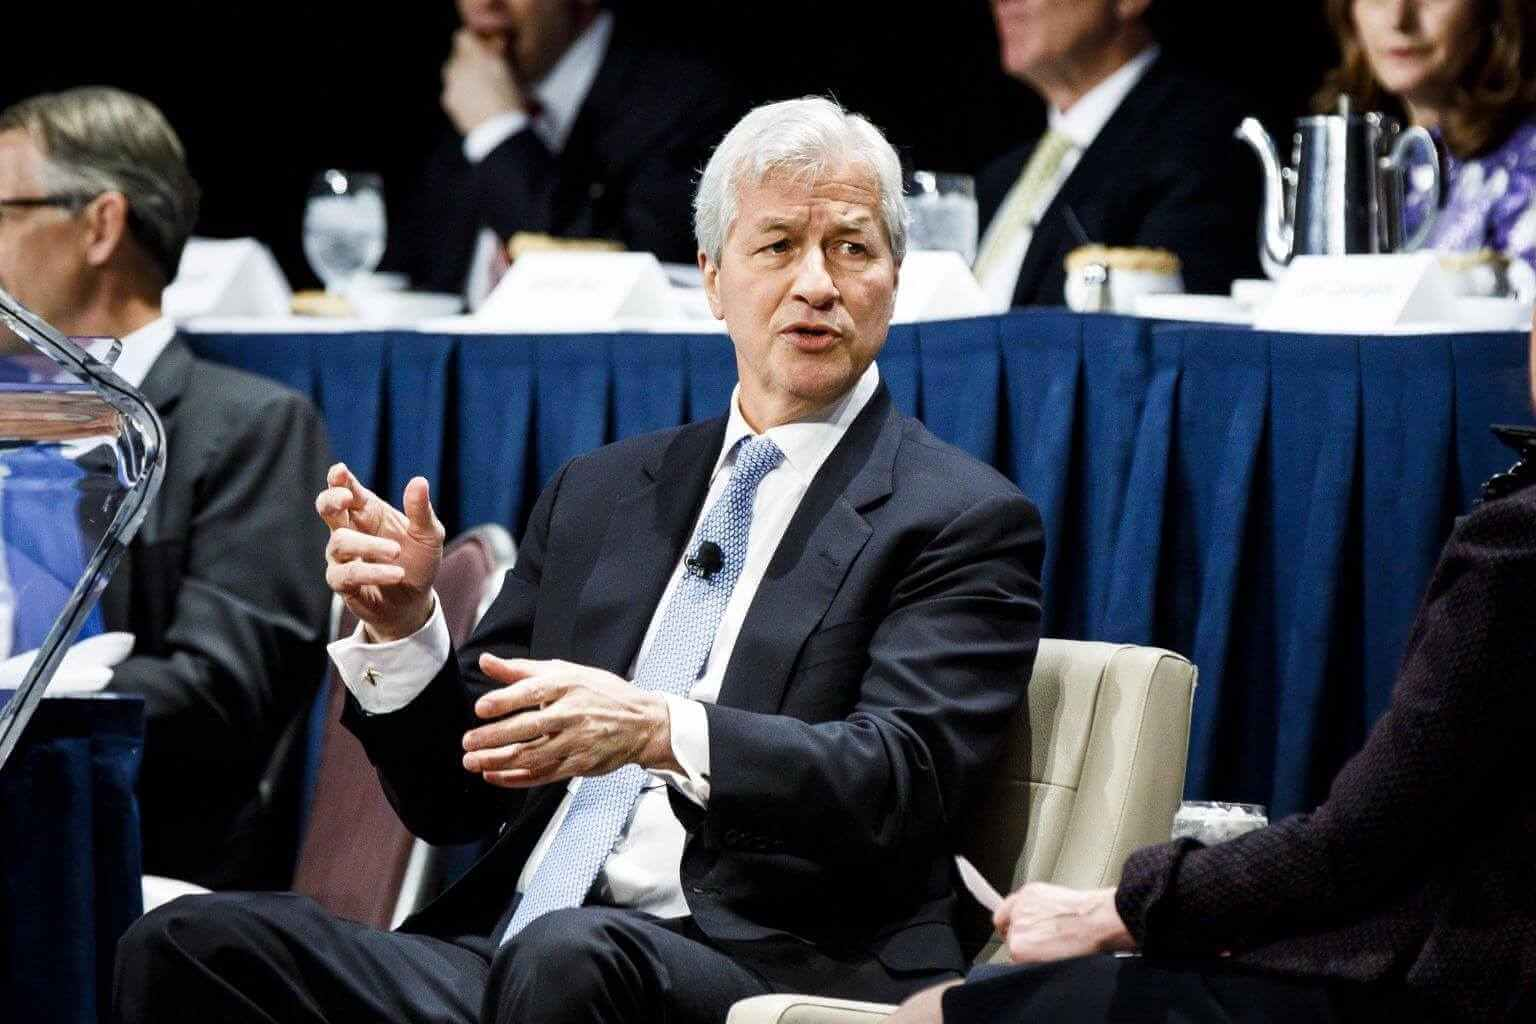 JP Morgan CEO Jamie Dimon gets a raise of $31m